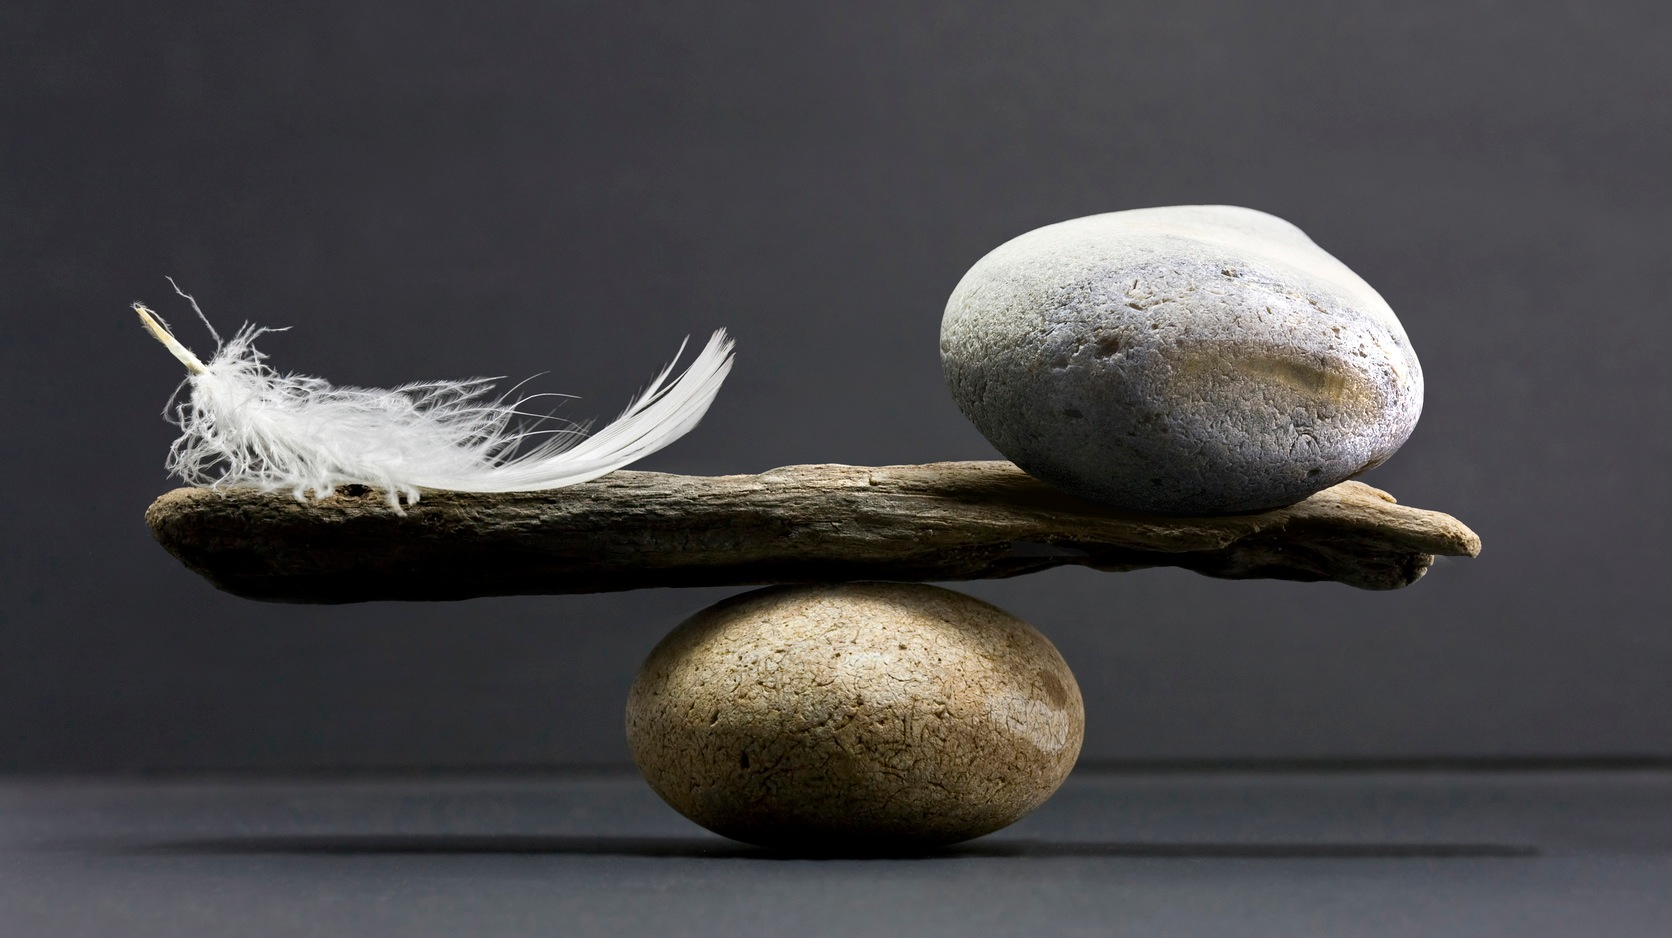 feather-and-stone-balance-cropped